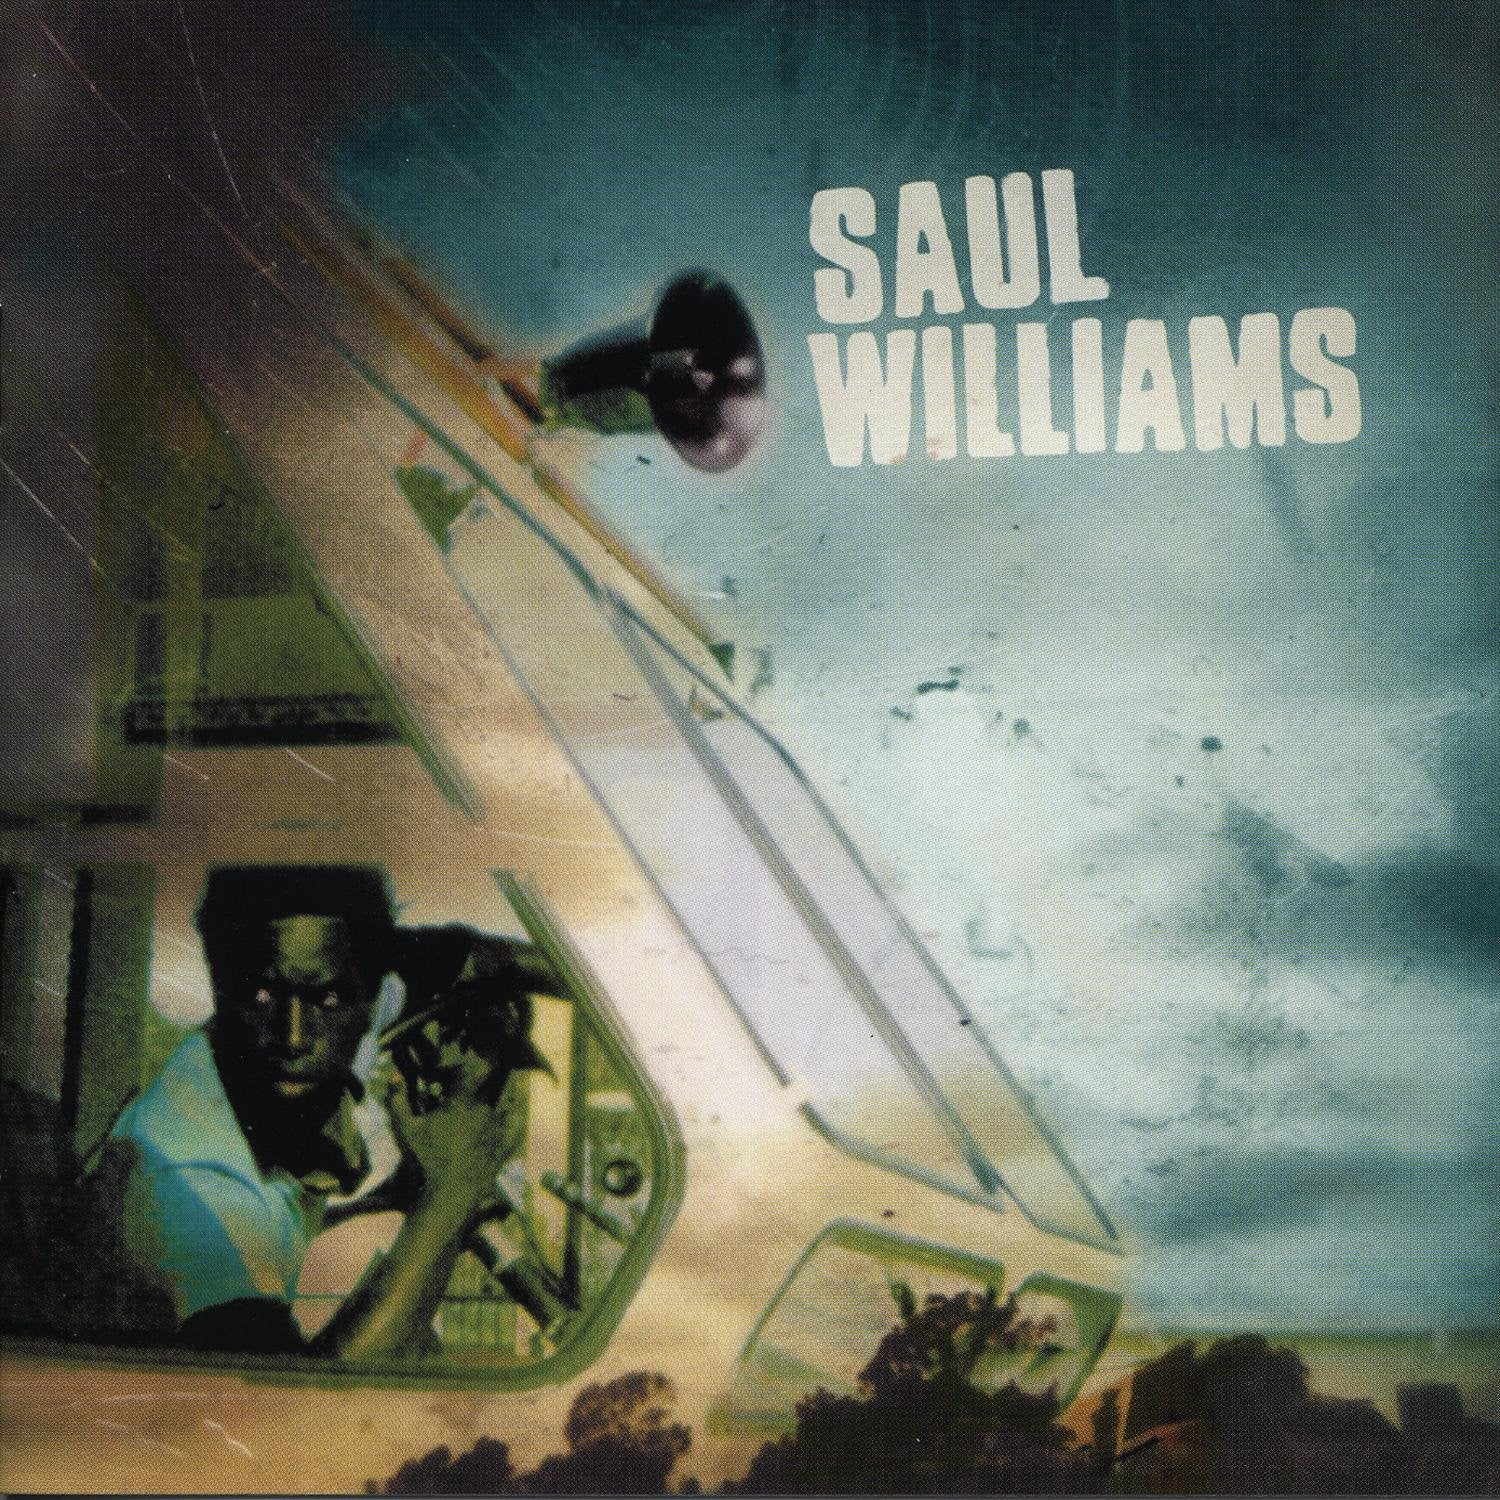 Saul Williams - Saul Williams, CD - The Giant Peach